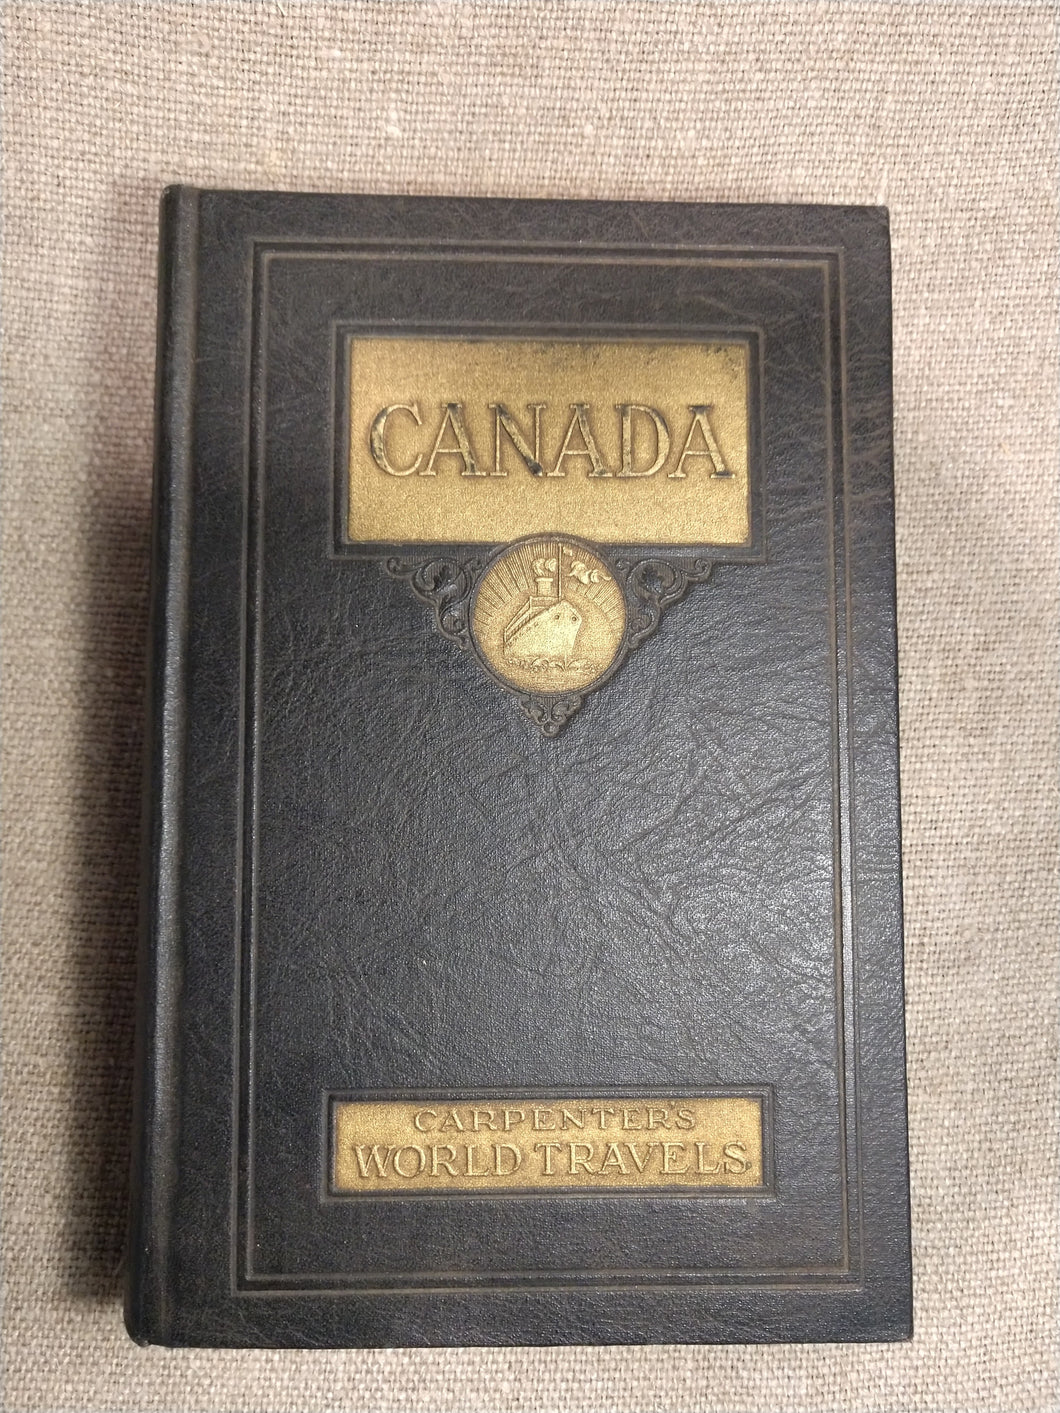 Canada History Book, Leather Bound, Carpenter's World Travels